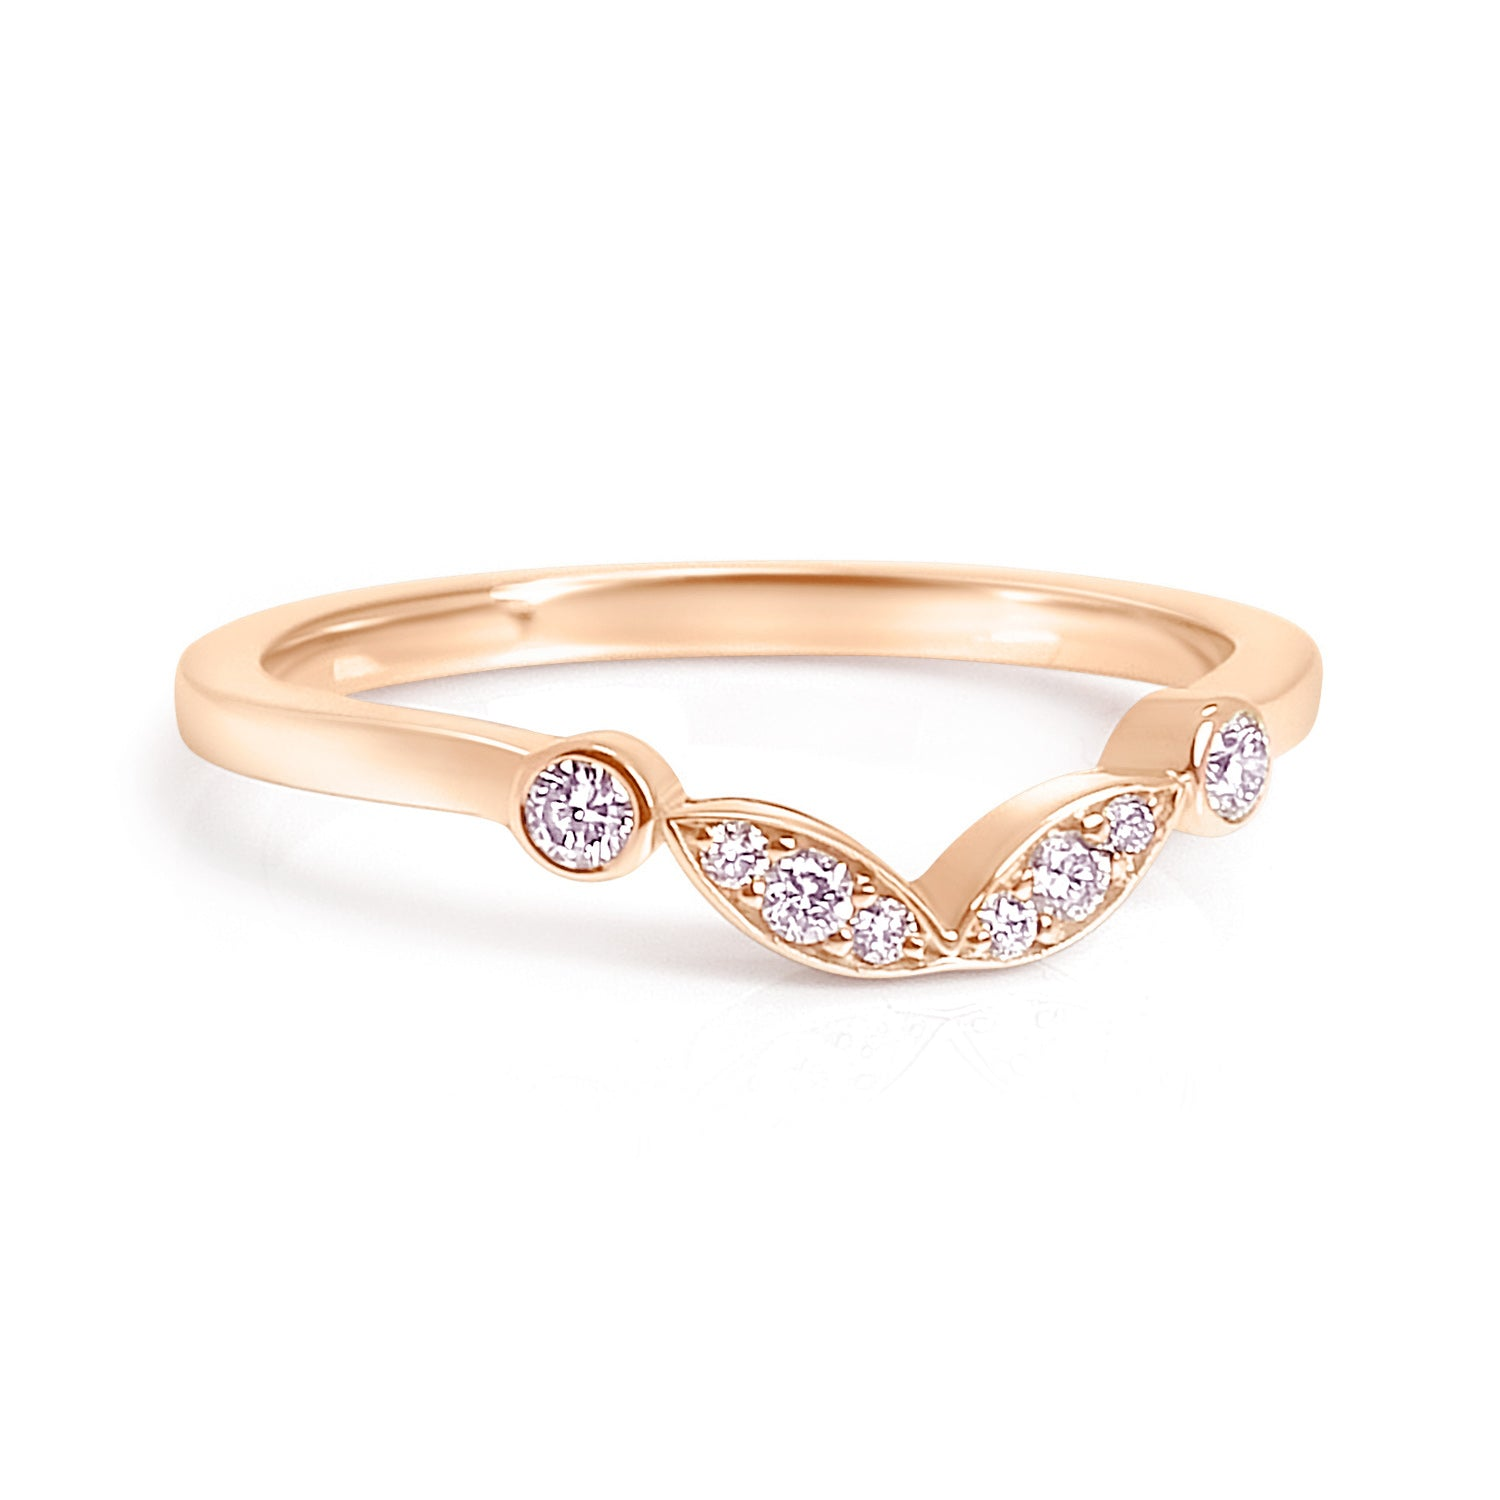 Bespoke Claire engagement ring - Fairtrade rose gold, conflict-free diamonds and unique tailored shape